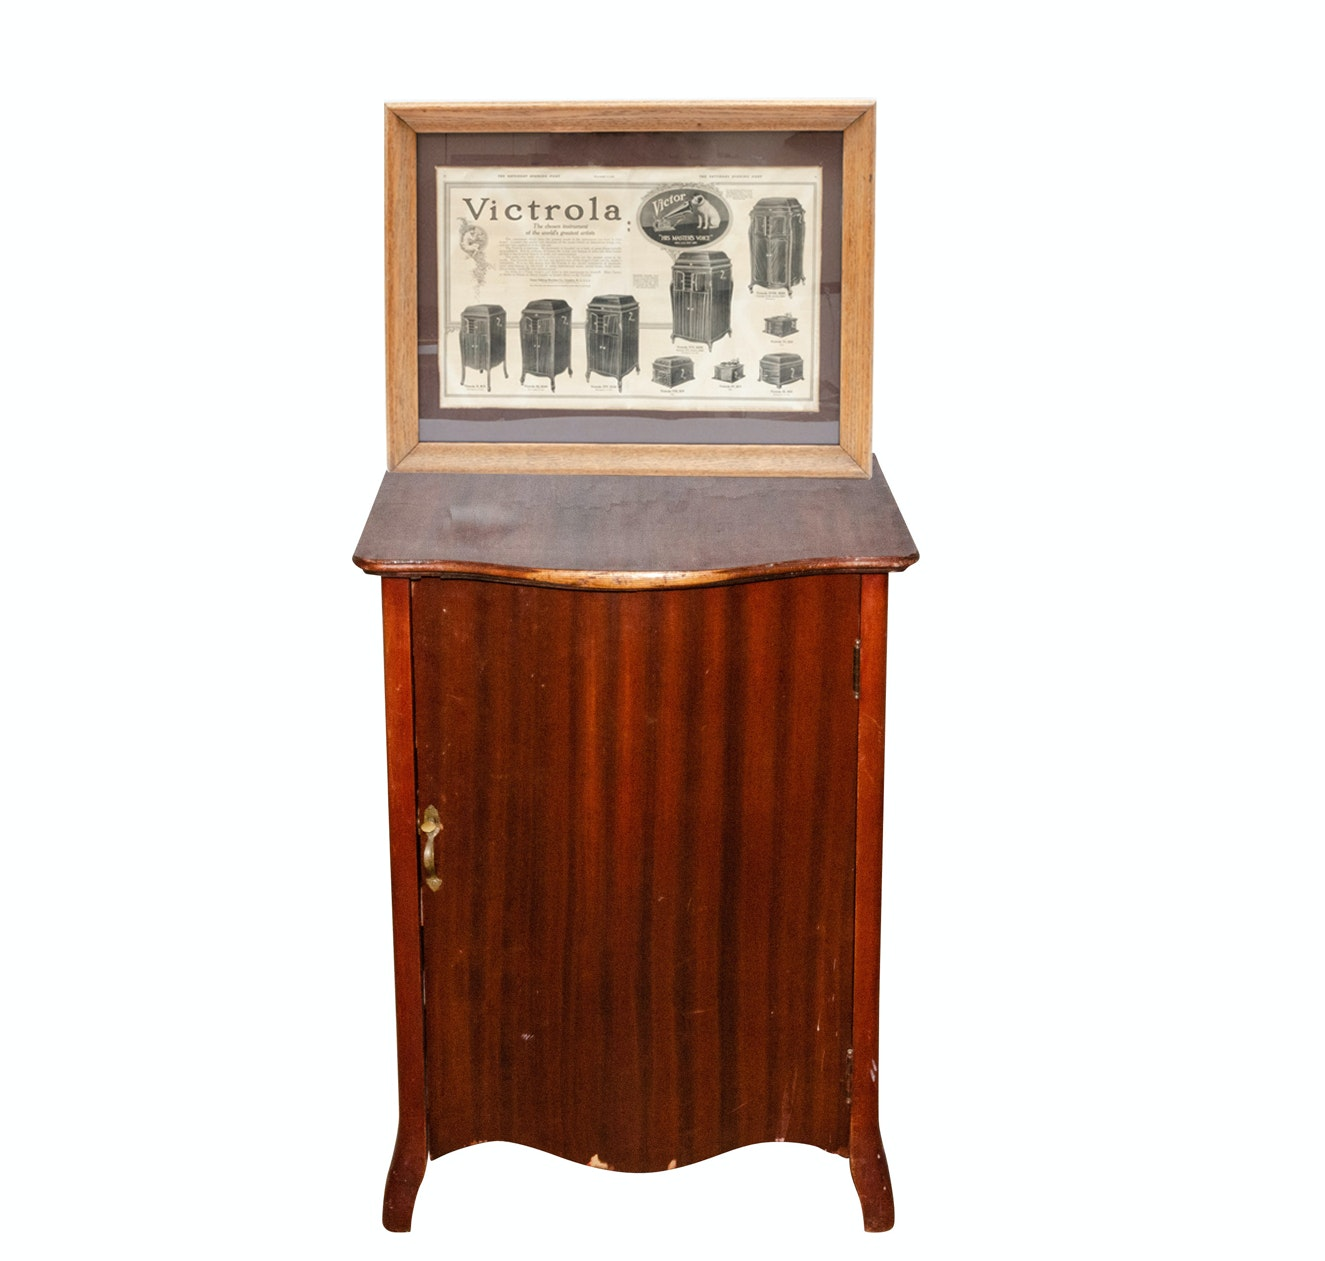 Early 20th Century Mahogany Record Cabinet and Victrola Advertisements